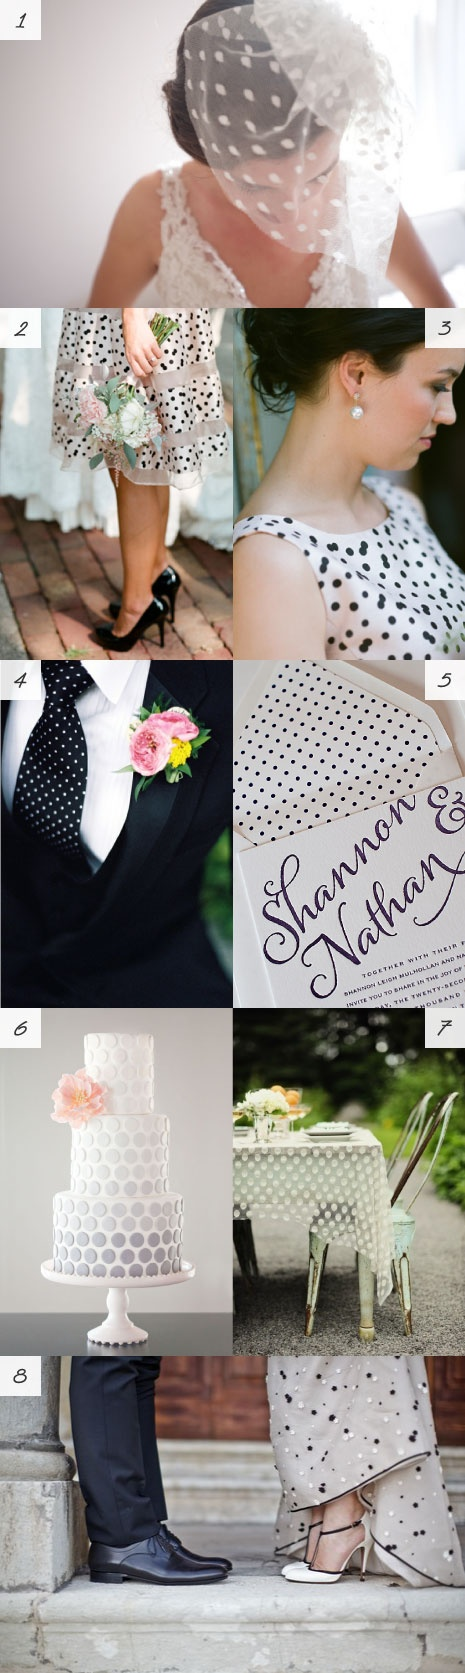 polka dot wedding inspiration #polkadots http://weddings.momsmags.net/polka-dot-wedding-invitation-cards/